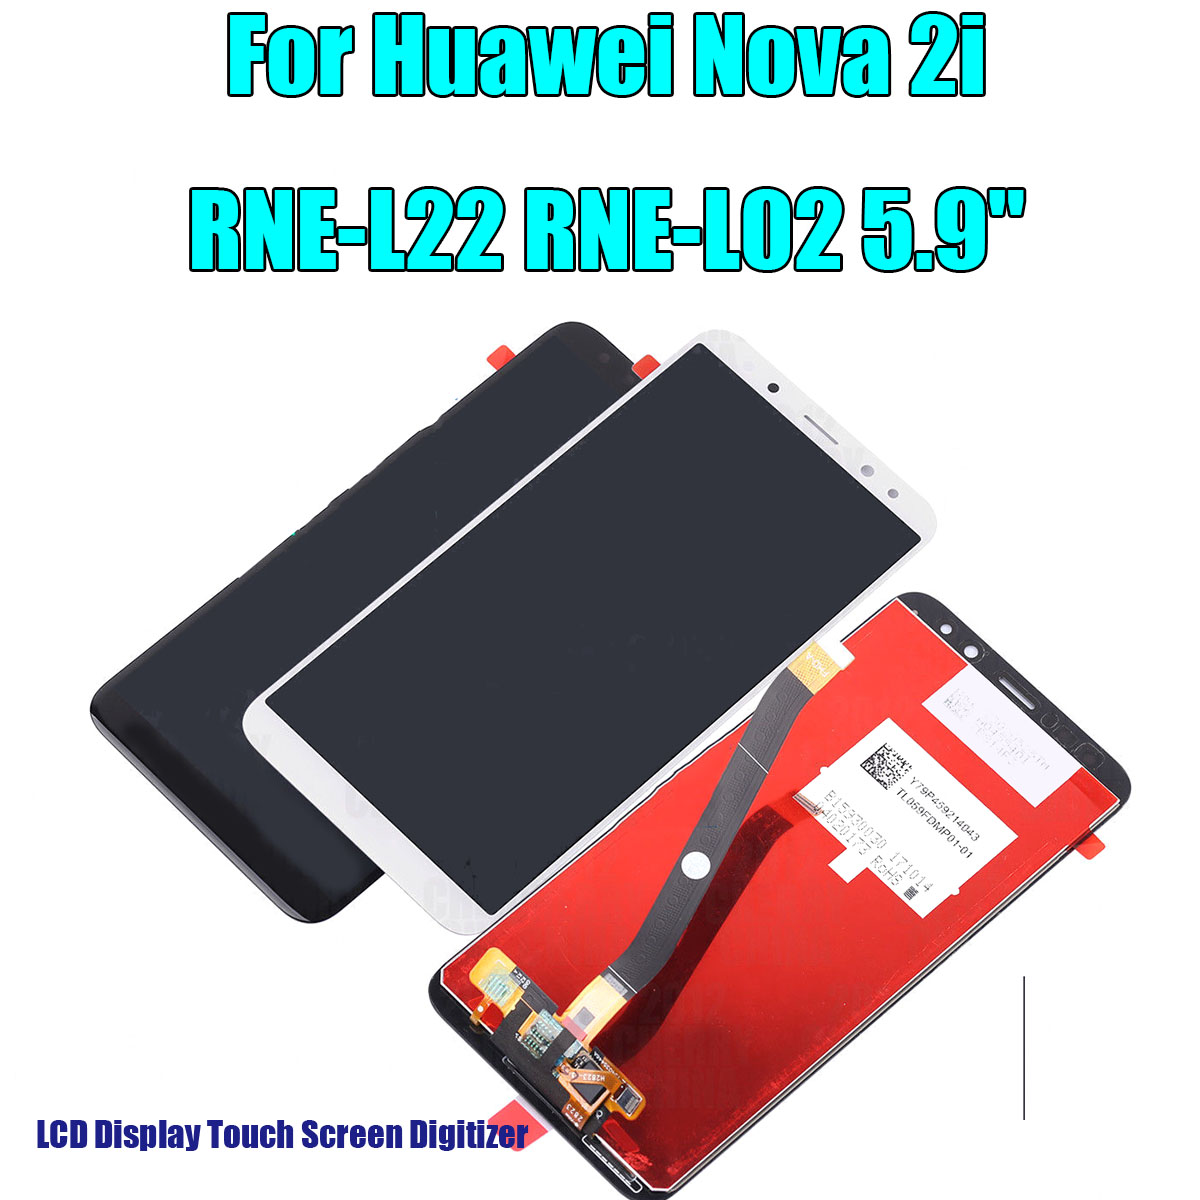 LCD Display Touch Replacement Screen Digitizer For Huawei Nova 2i RNE-L22  RNE-L02 5 9